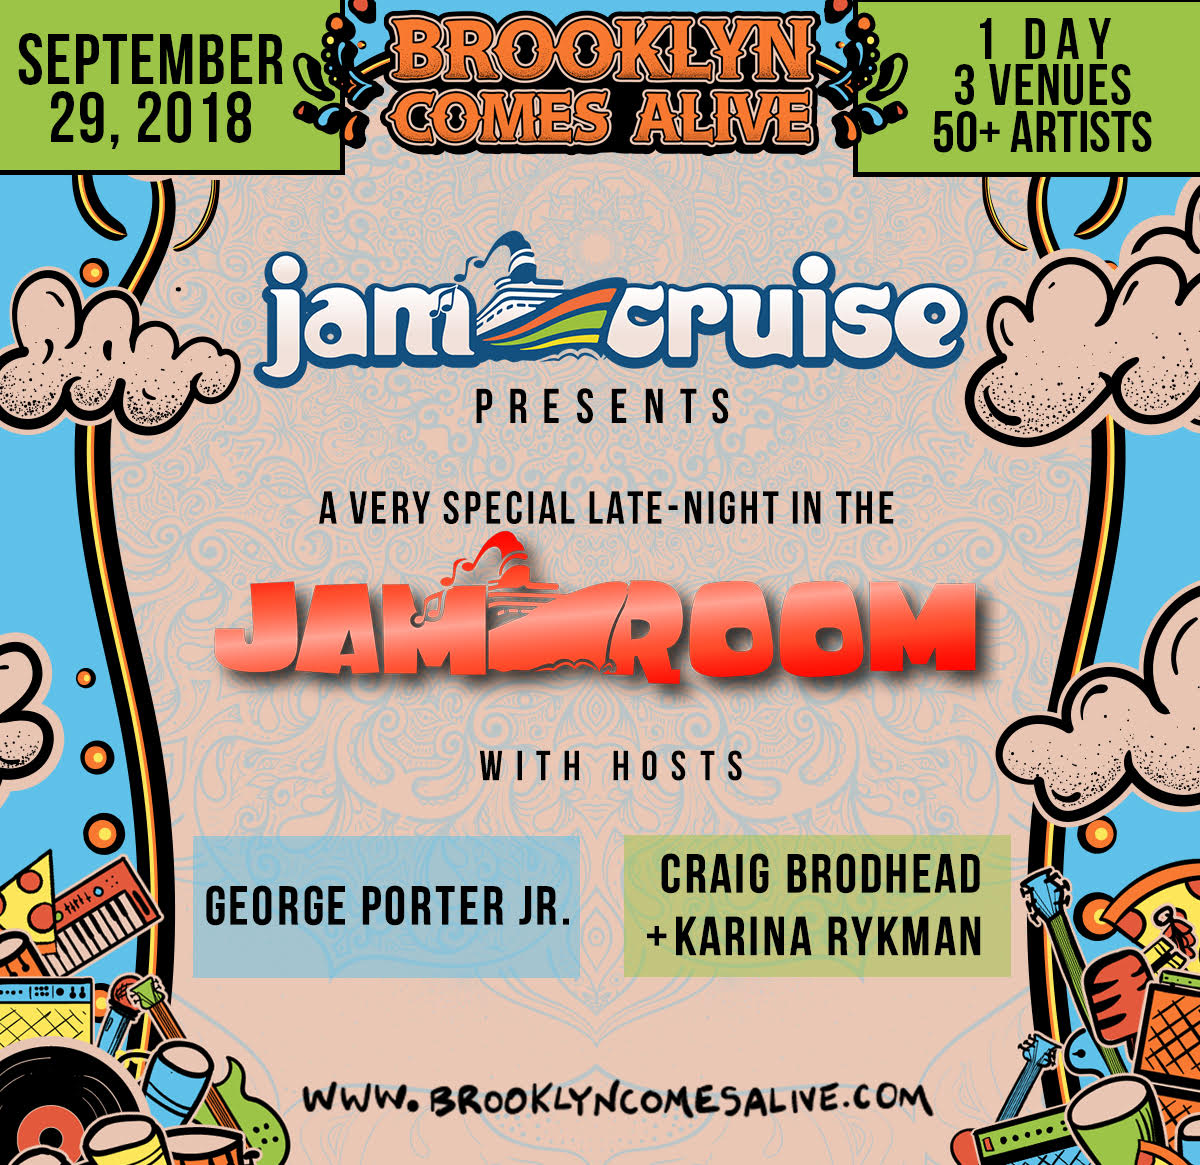 BROOKLYN COMES ALIVE ANNOUNCES HOSTS FOR THE JAM ROOM CURATED BY JAM CRUISE